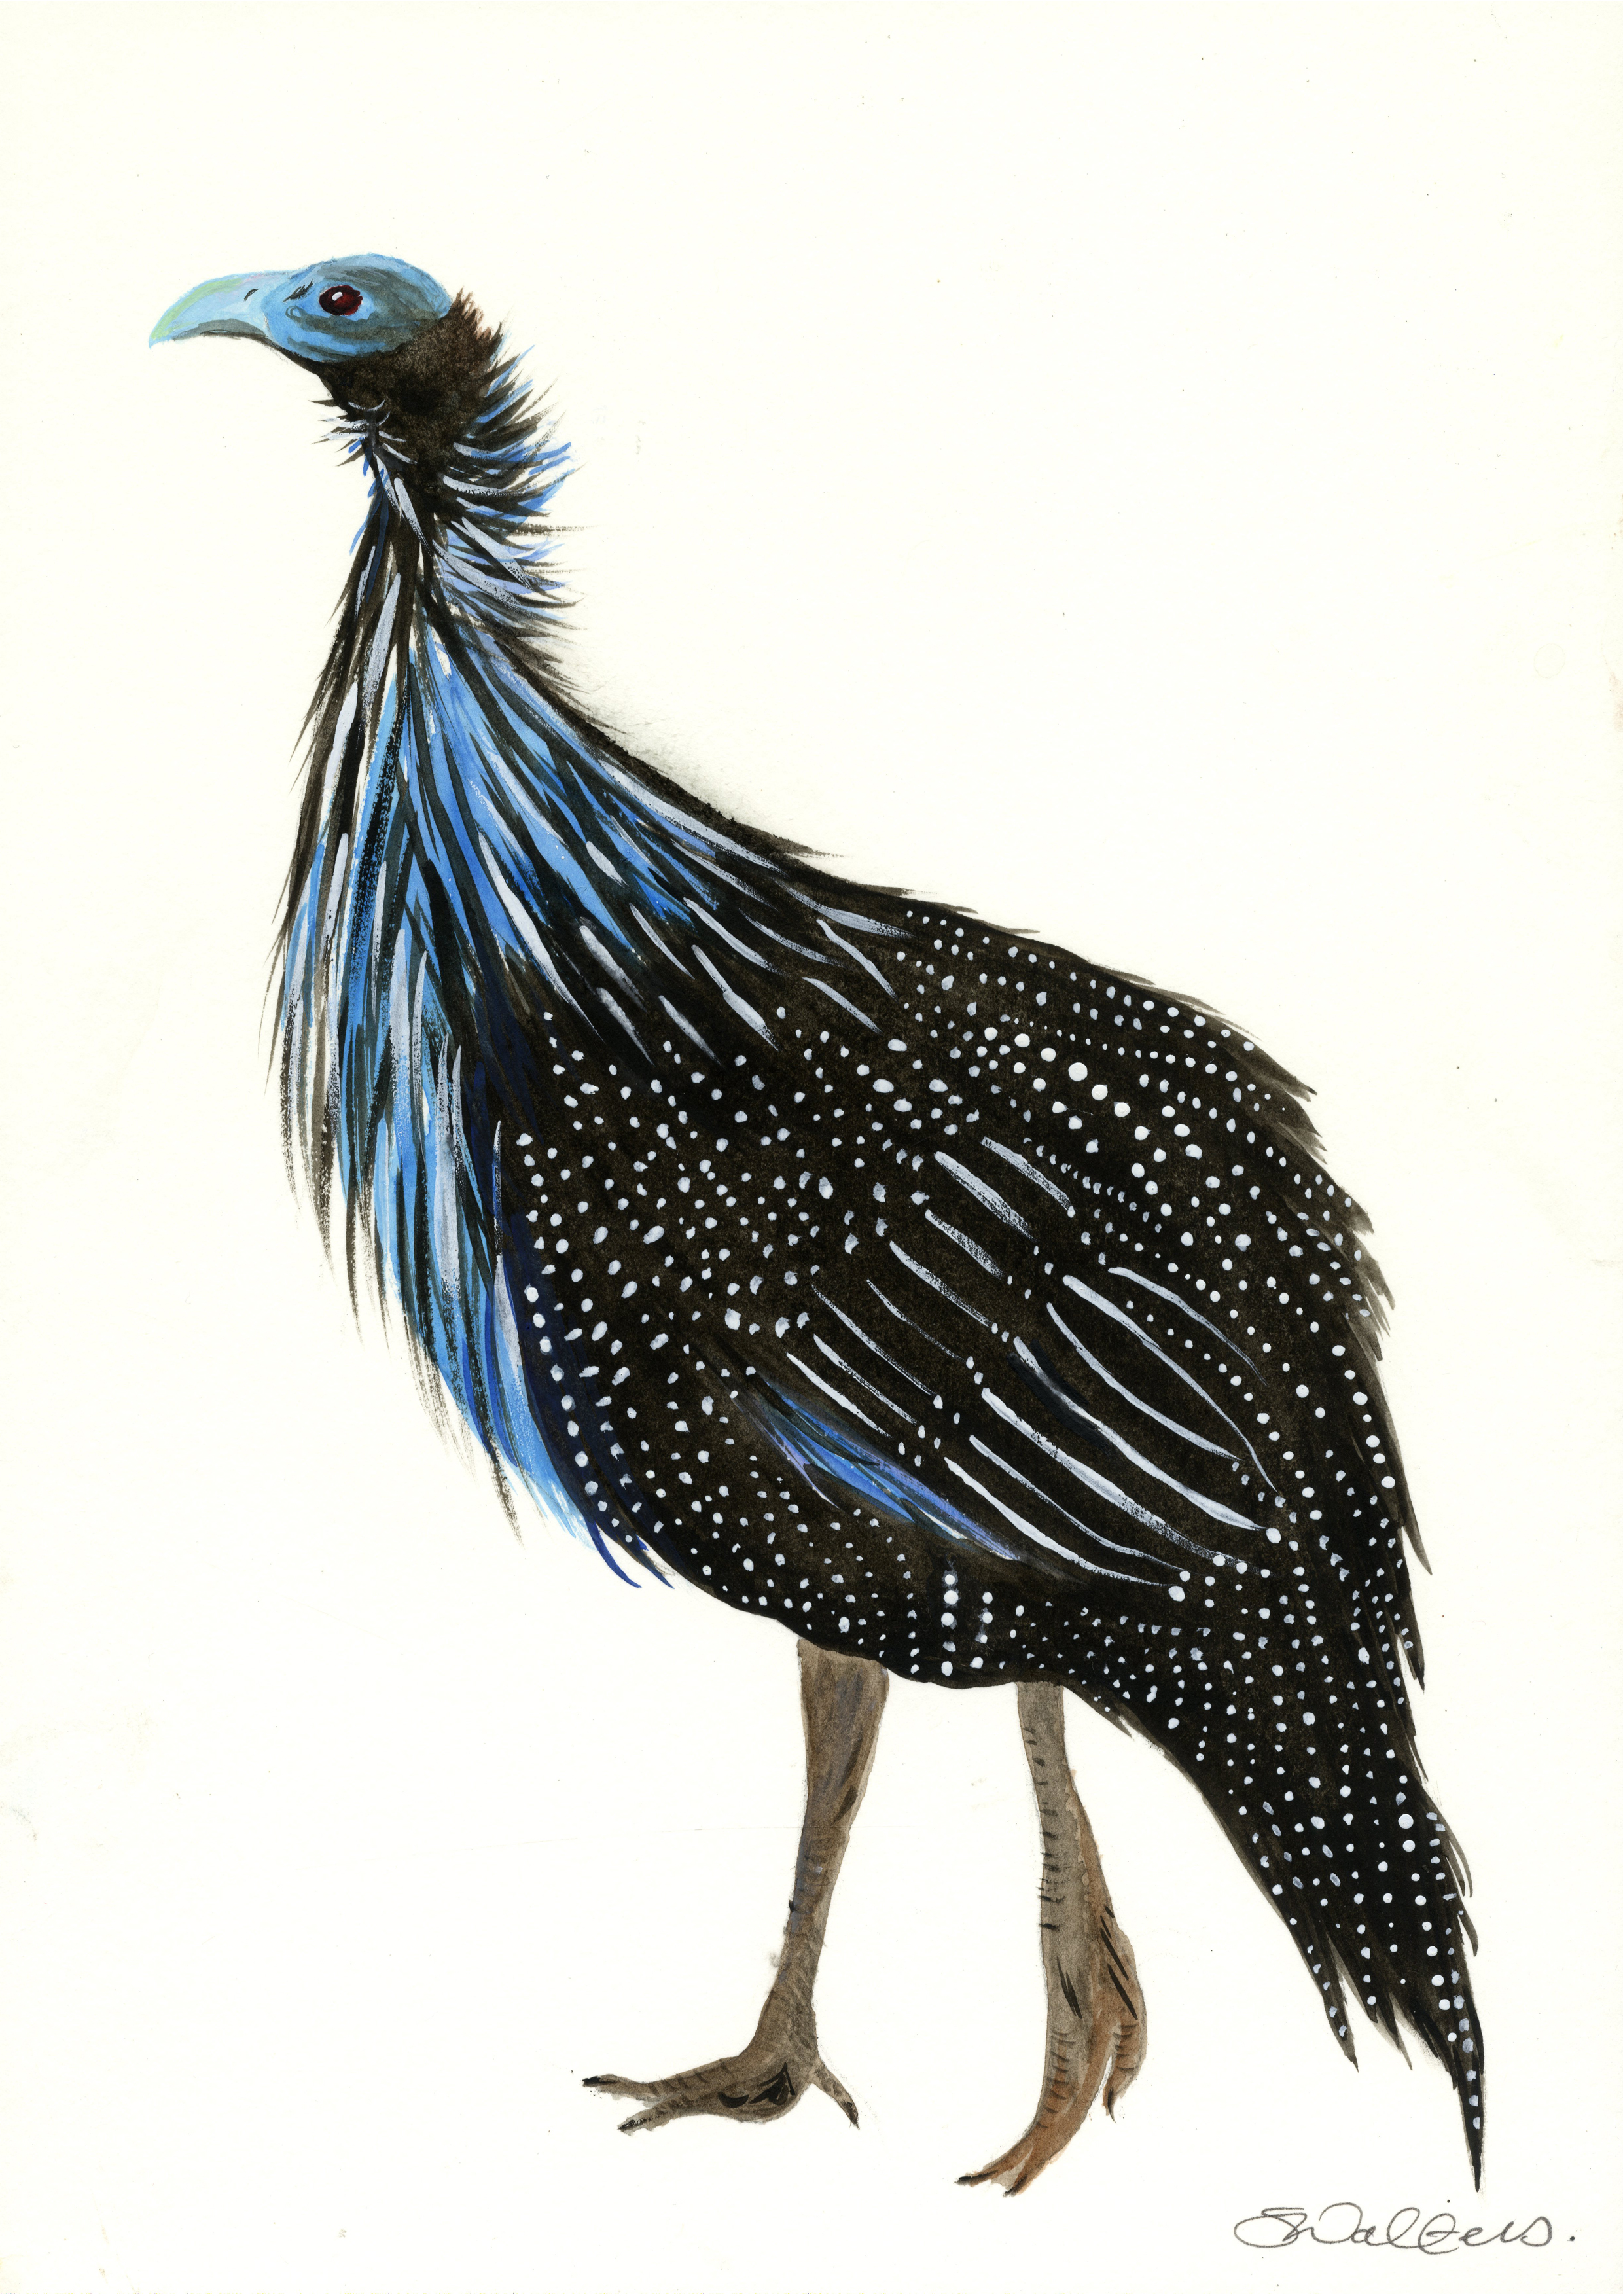 East African Guinea Fowl